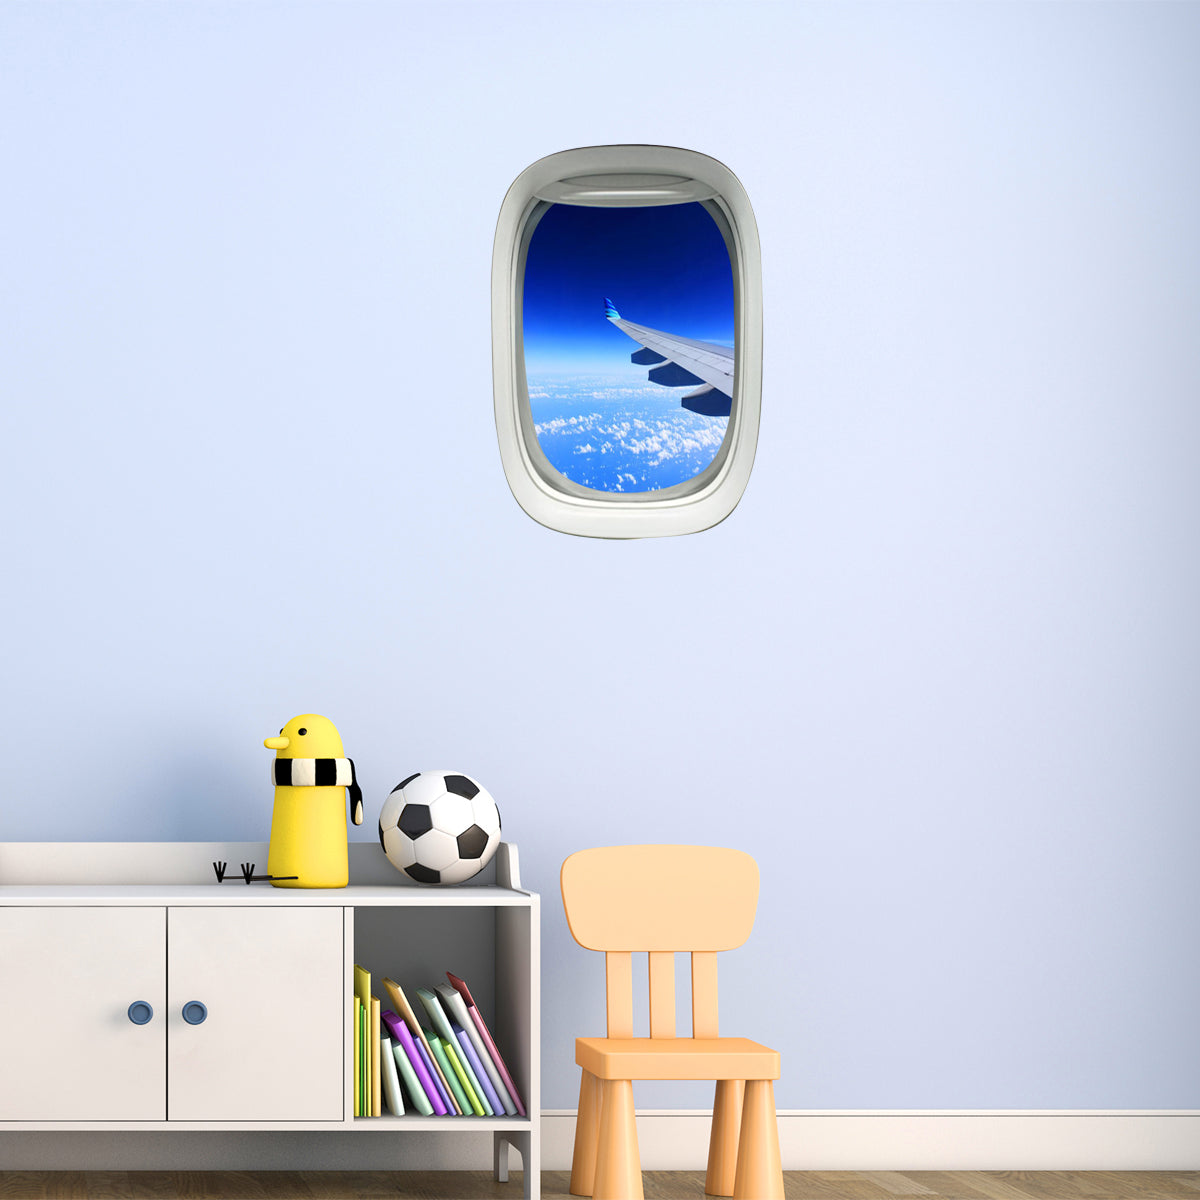 VWAQ Peel and Stick Commercial Airplane Window Wing View Vinyl Wall Decal - PW7